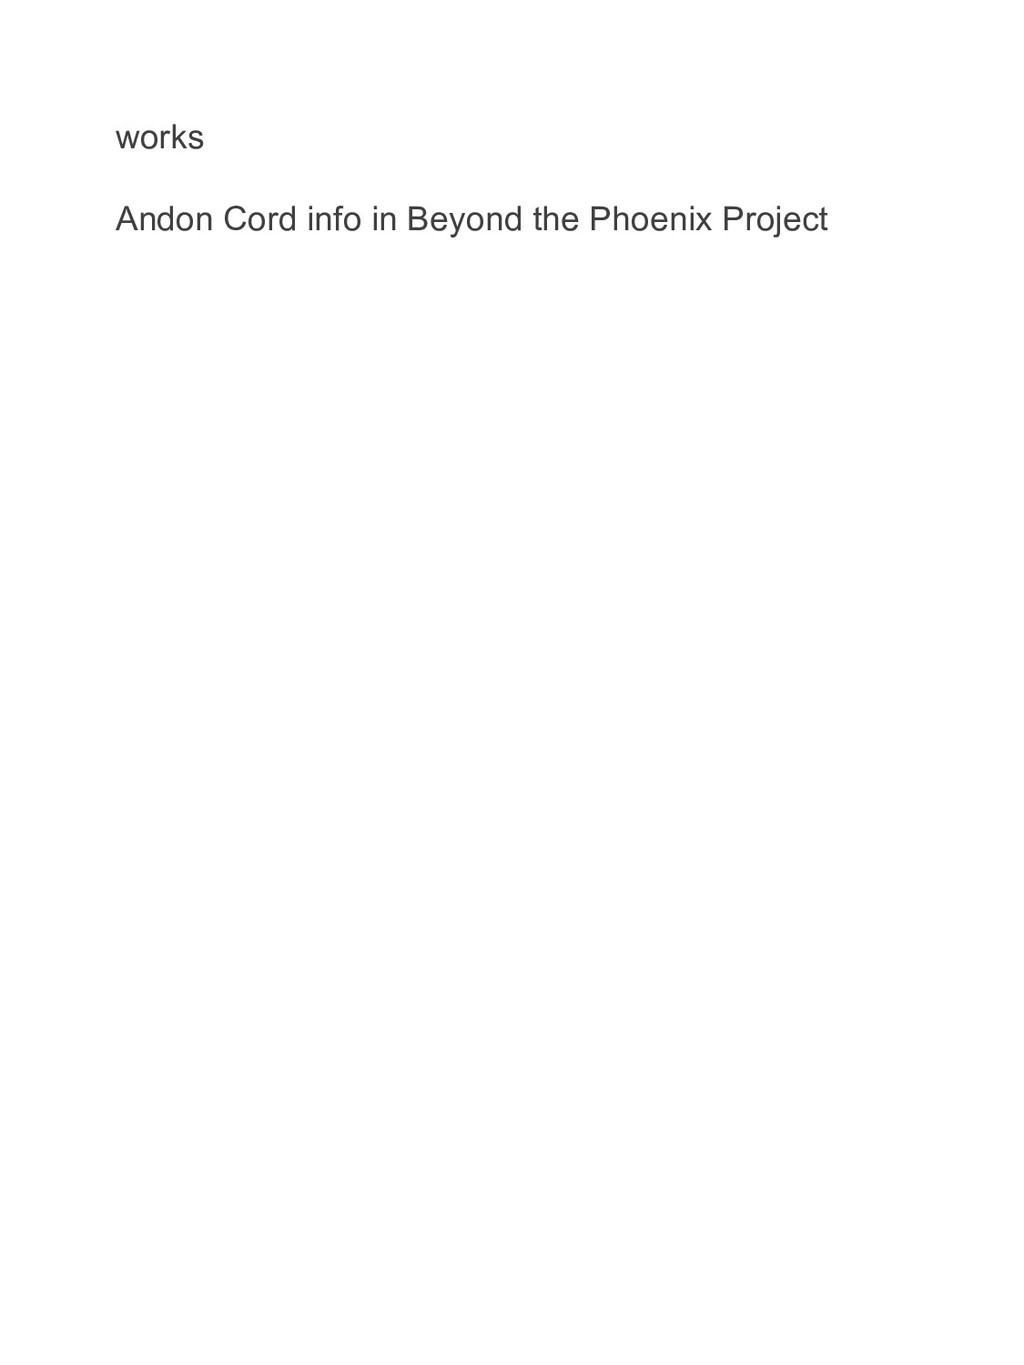 works Andon Cord info in Beyond the Phoenix Pro...